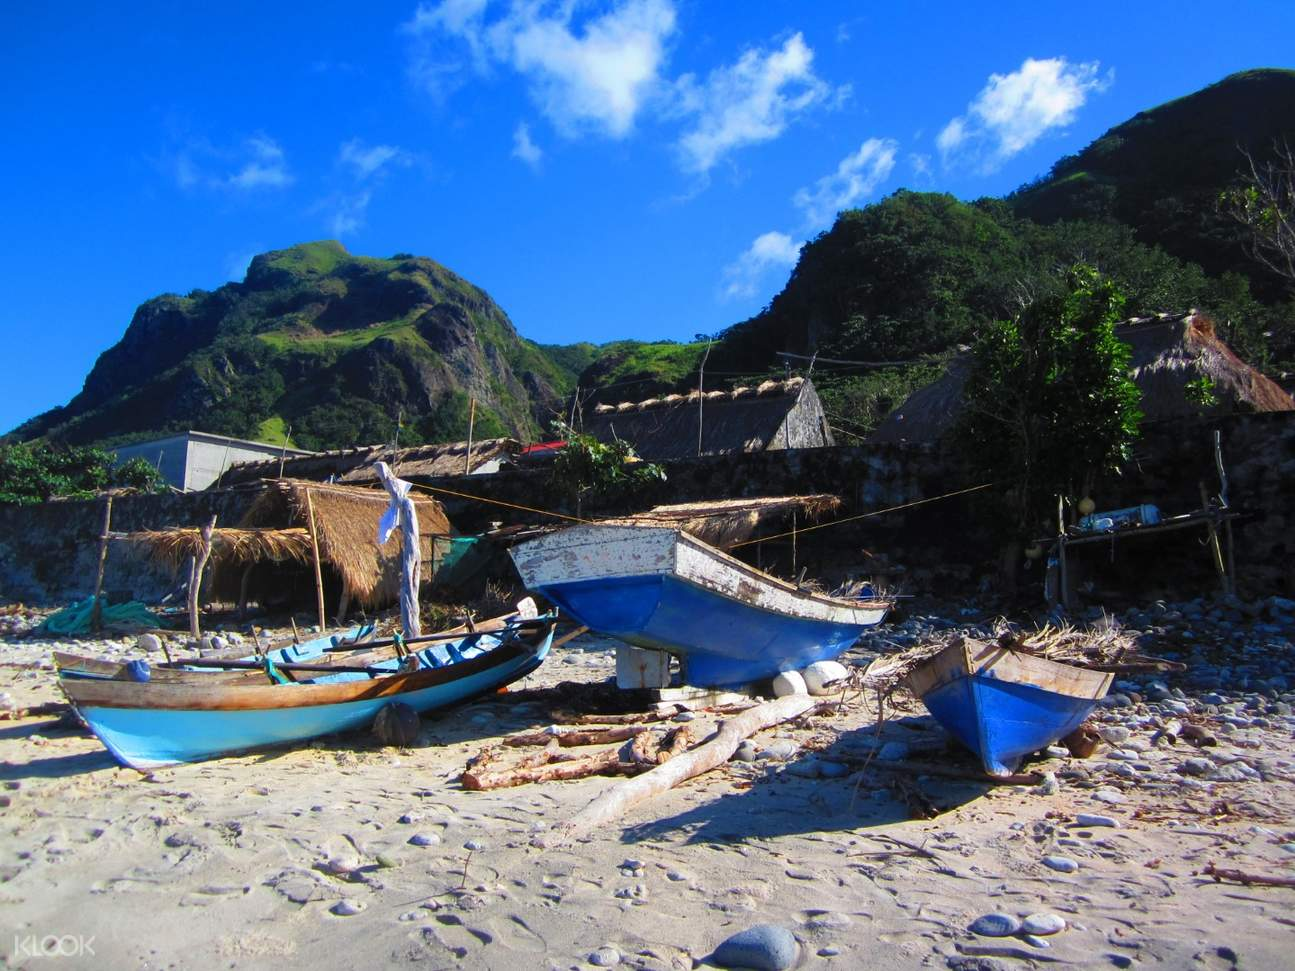 boats in the beachfront